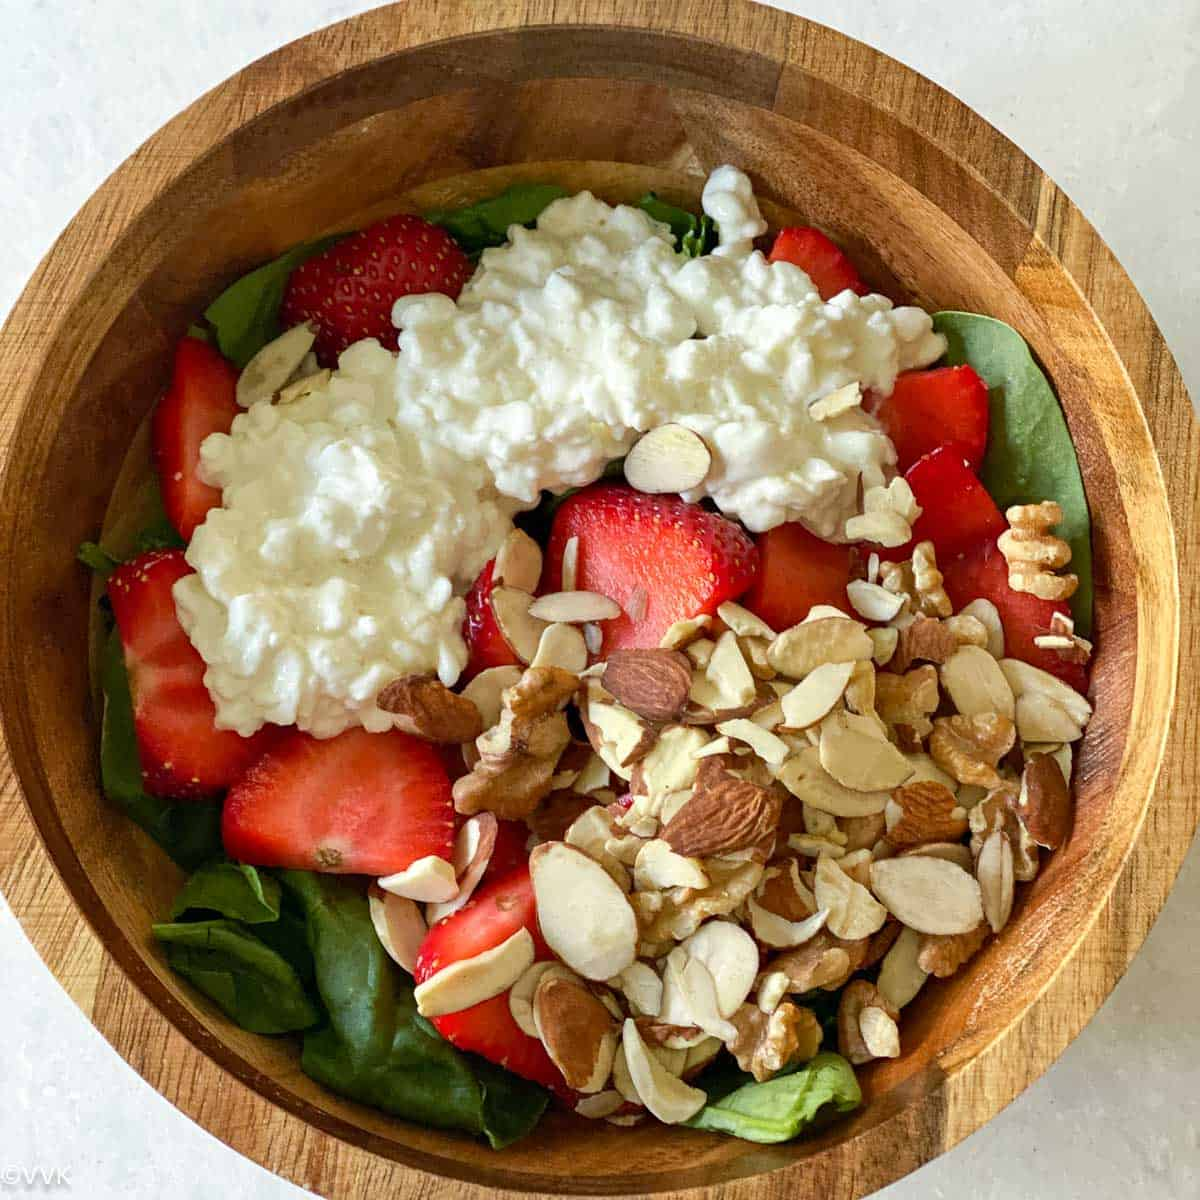 adding the spinach, strawberries, nuts and cottage cheese